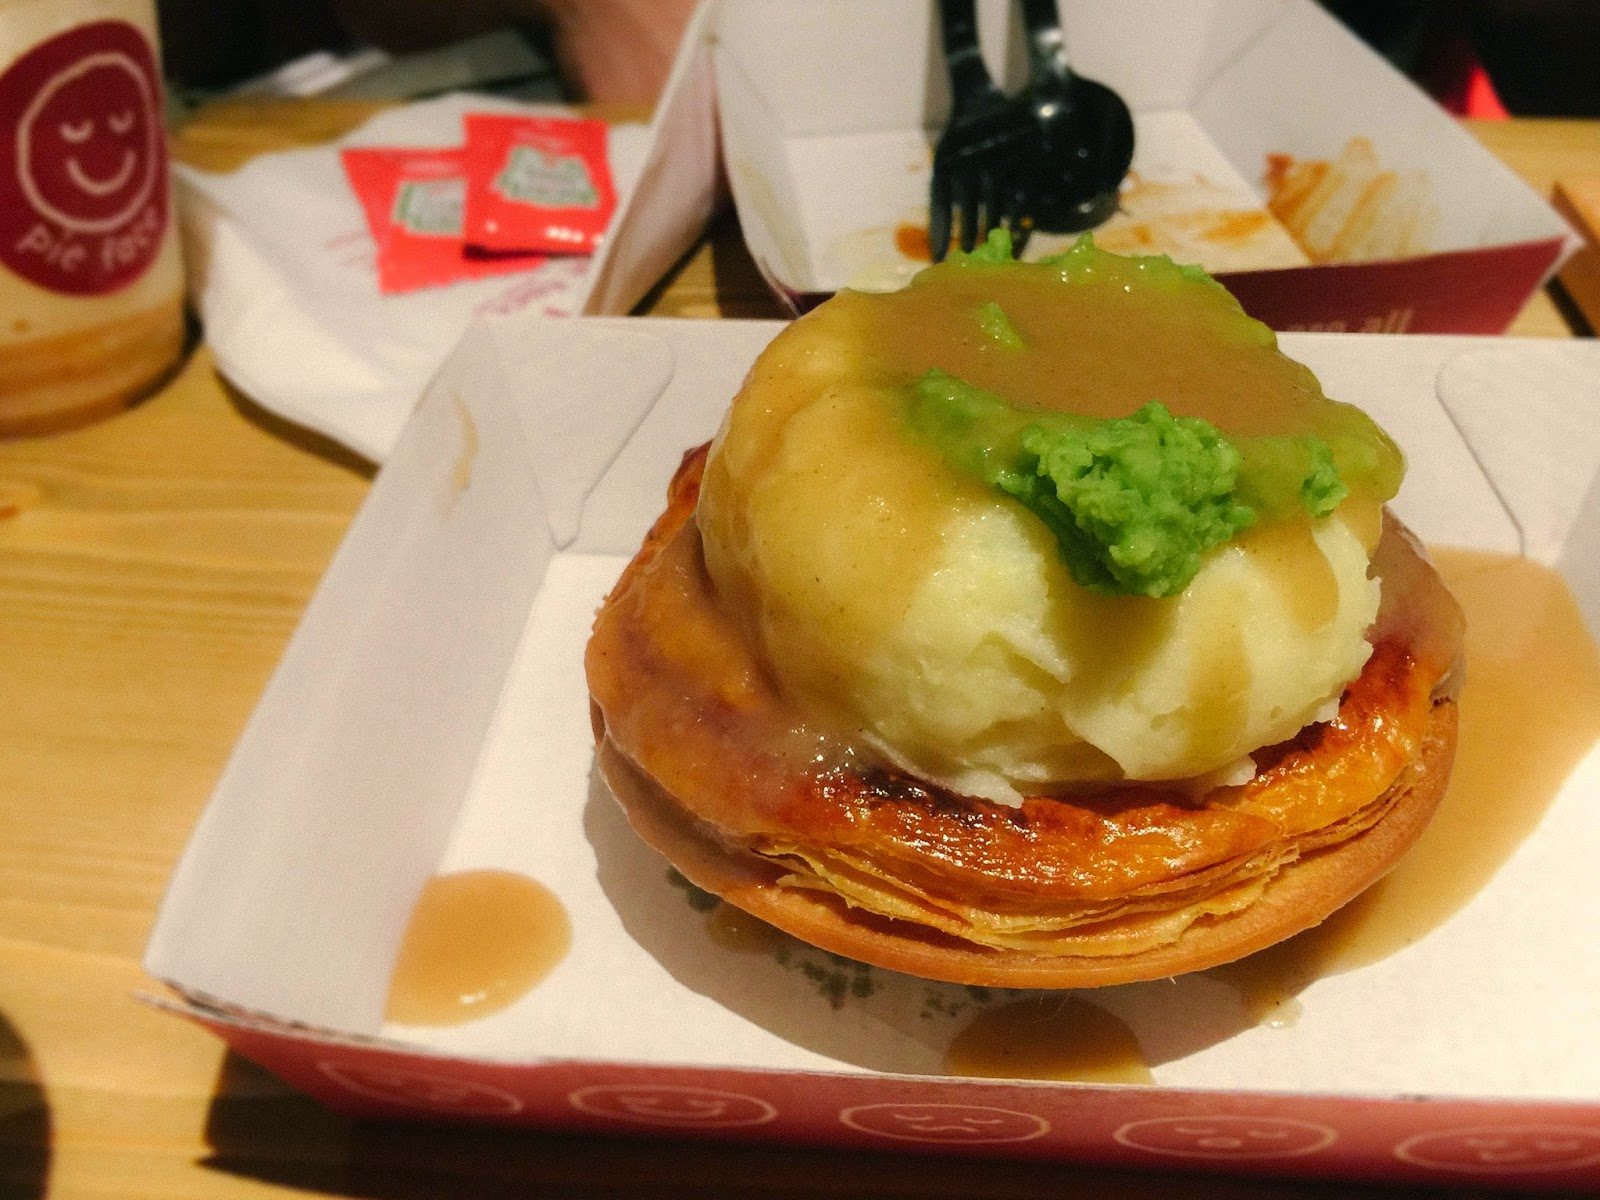 mash, gravy, mushy peas in pie face